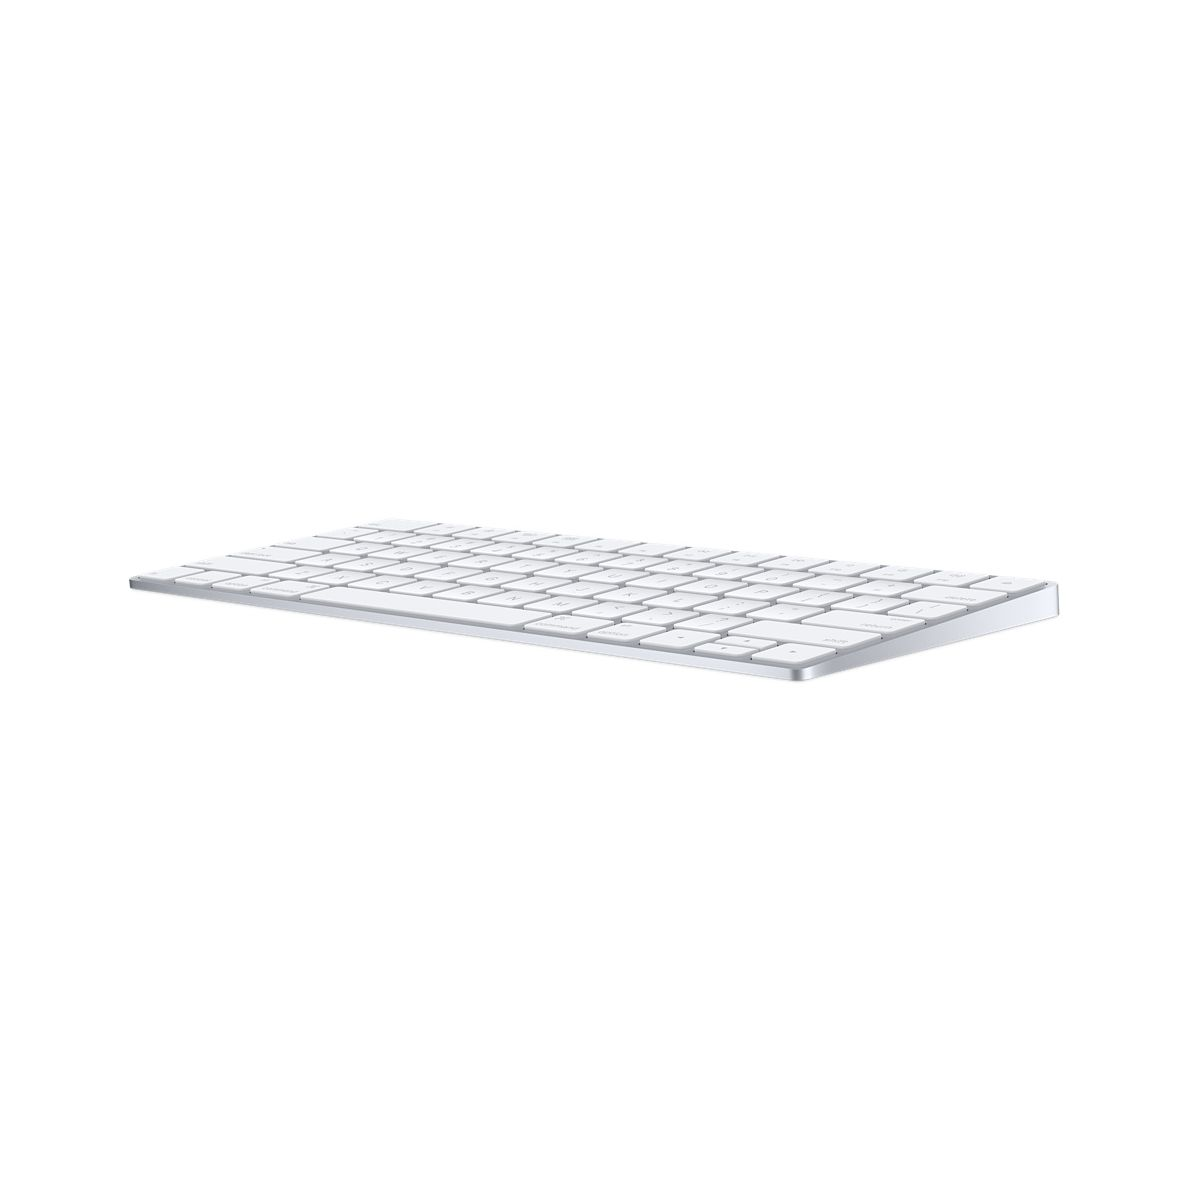 Clavier apple magic keyboard - livraison offerte : code liv